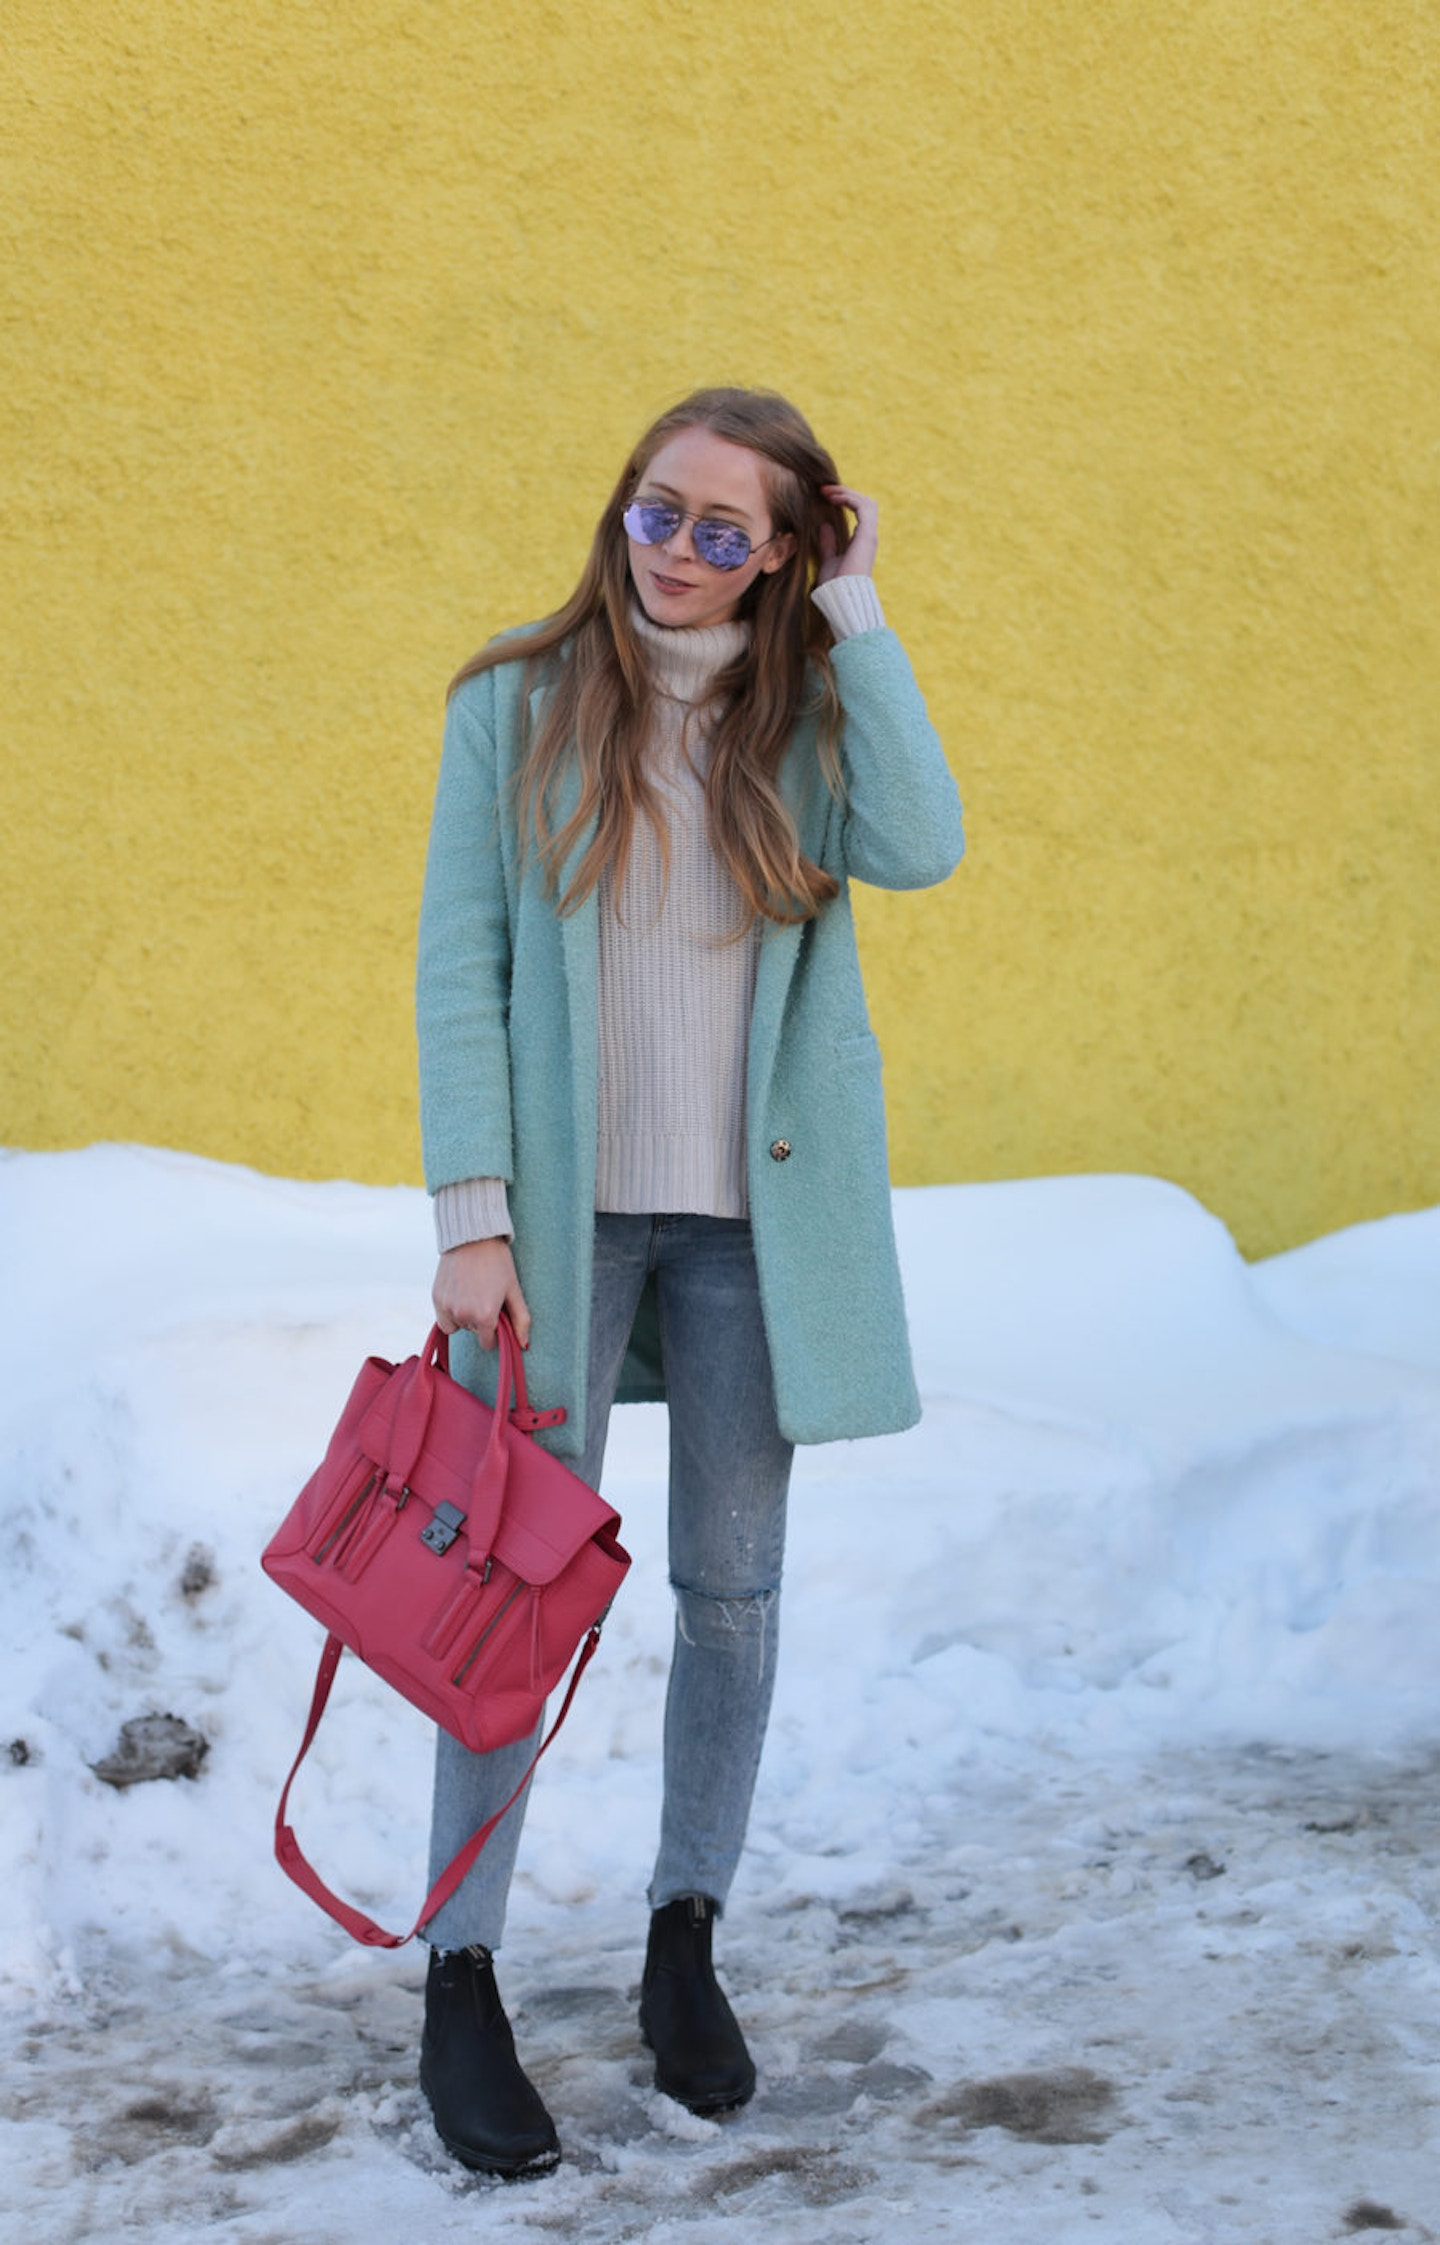 How to wear Blundstones and look chic